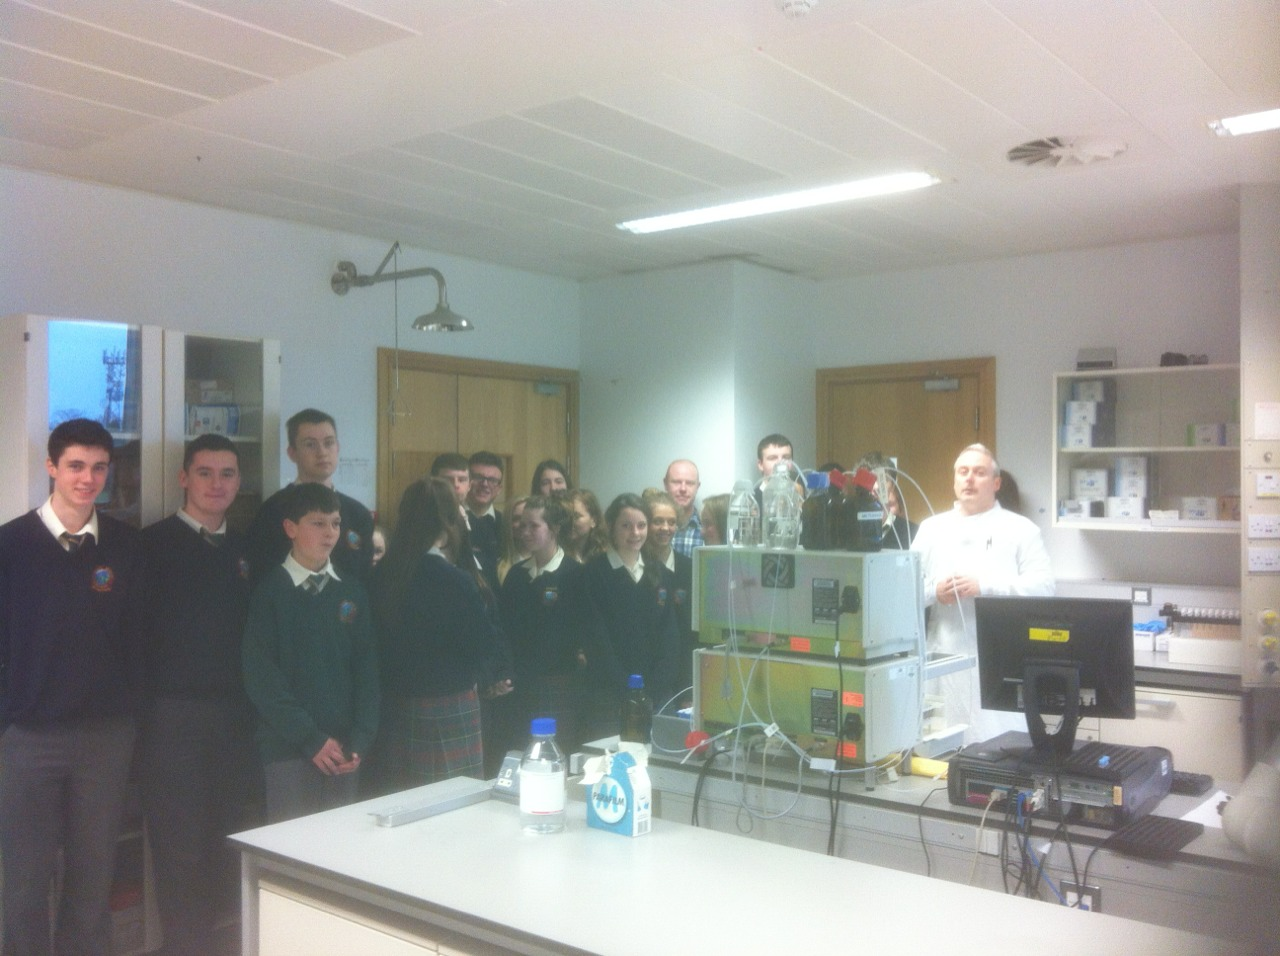 The TY class and Scifest students visited the State Laboratory today. Dr Jonathan Carroll showed us around and explained the workings of the laboratory to us. It is rare to get a visit to the state labs so we felt privileged to have been given this unique opportunity.